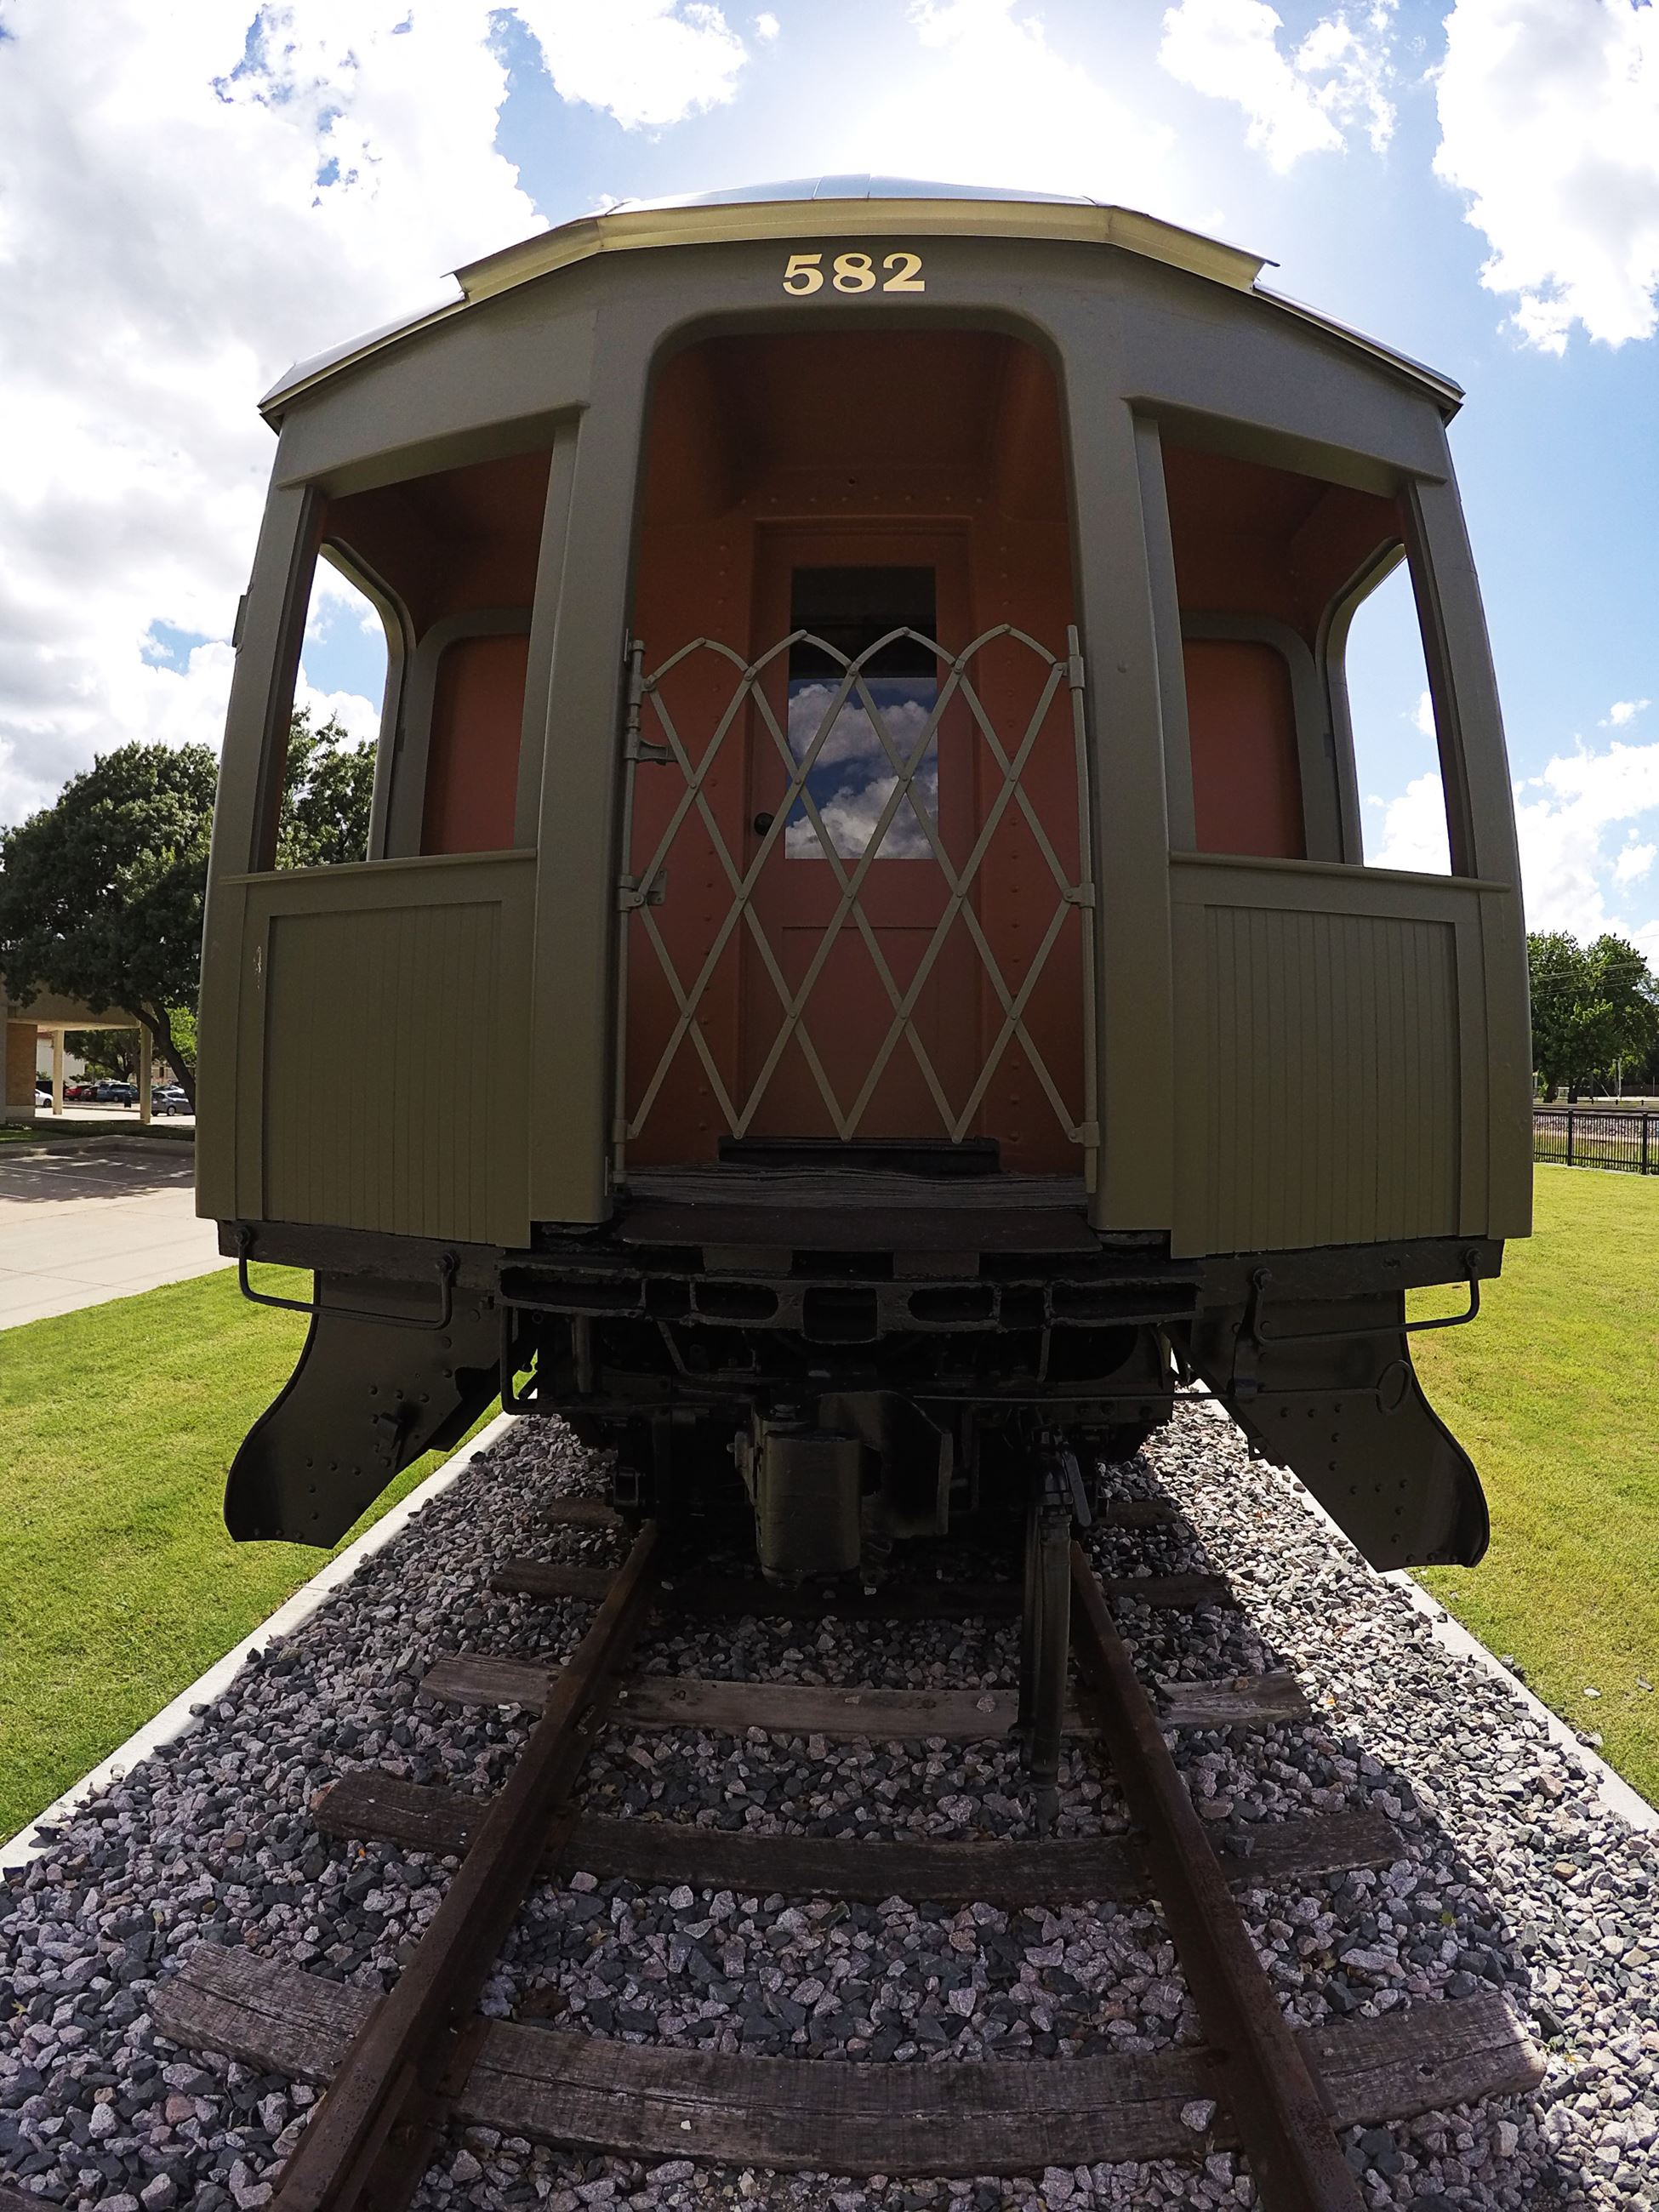 The back end of the Pullman Coach Car.